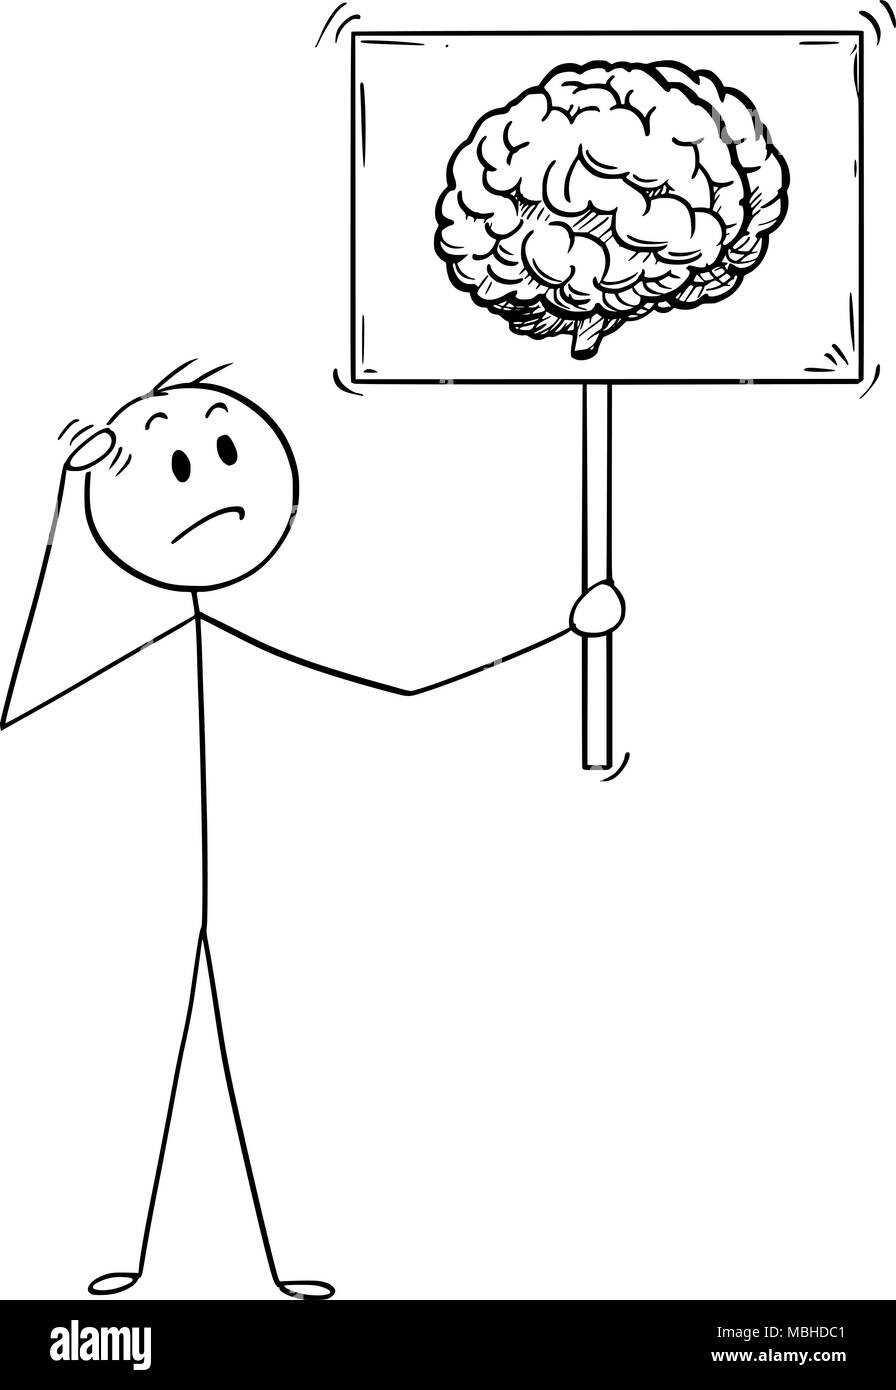 Cartoon of Unsure Man or Businessman Holding Sign with Brain Image Symbol - Stock Image